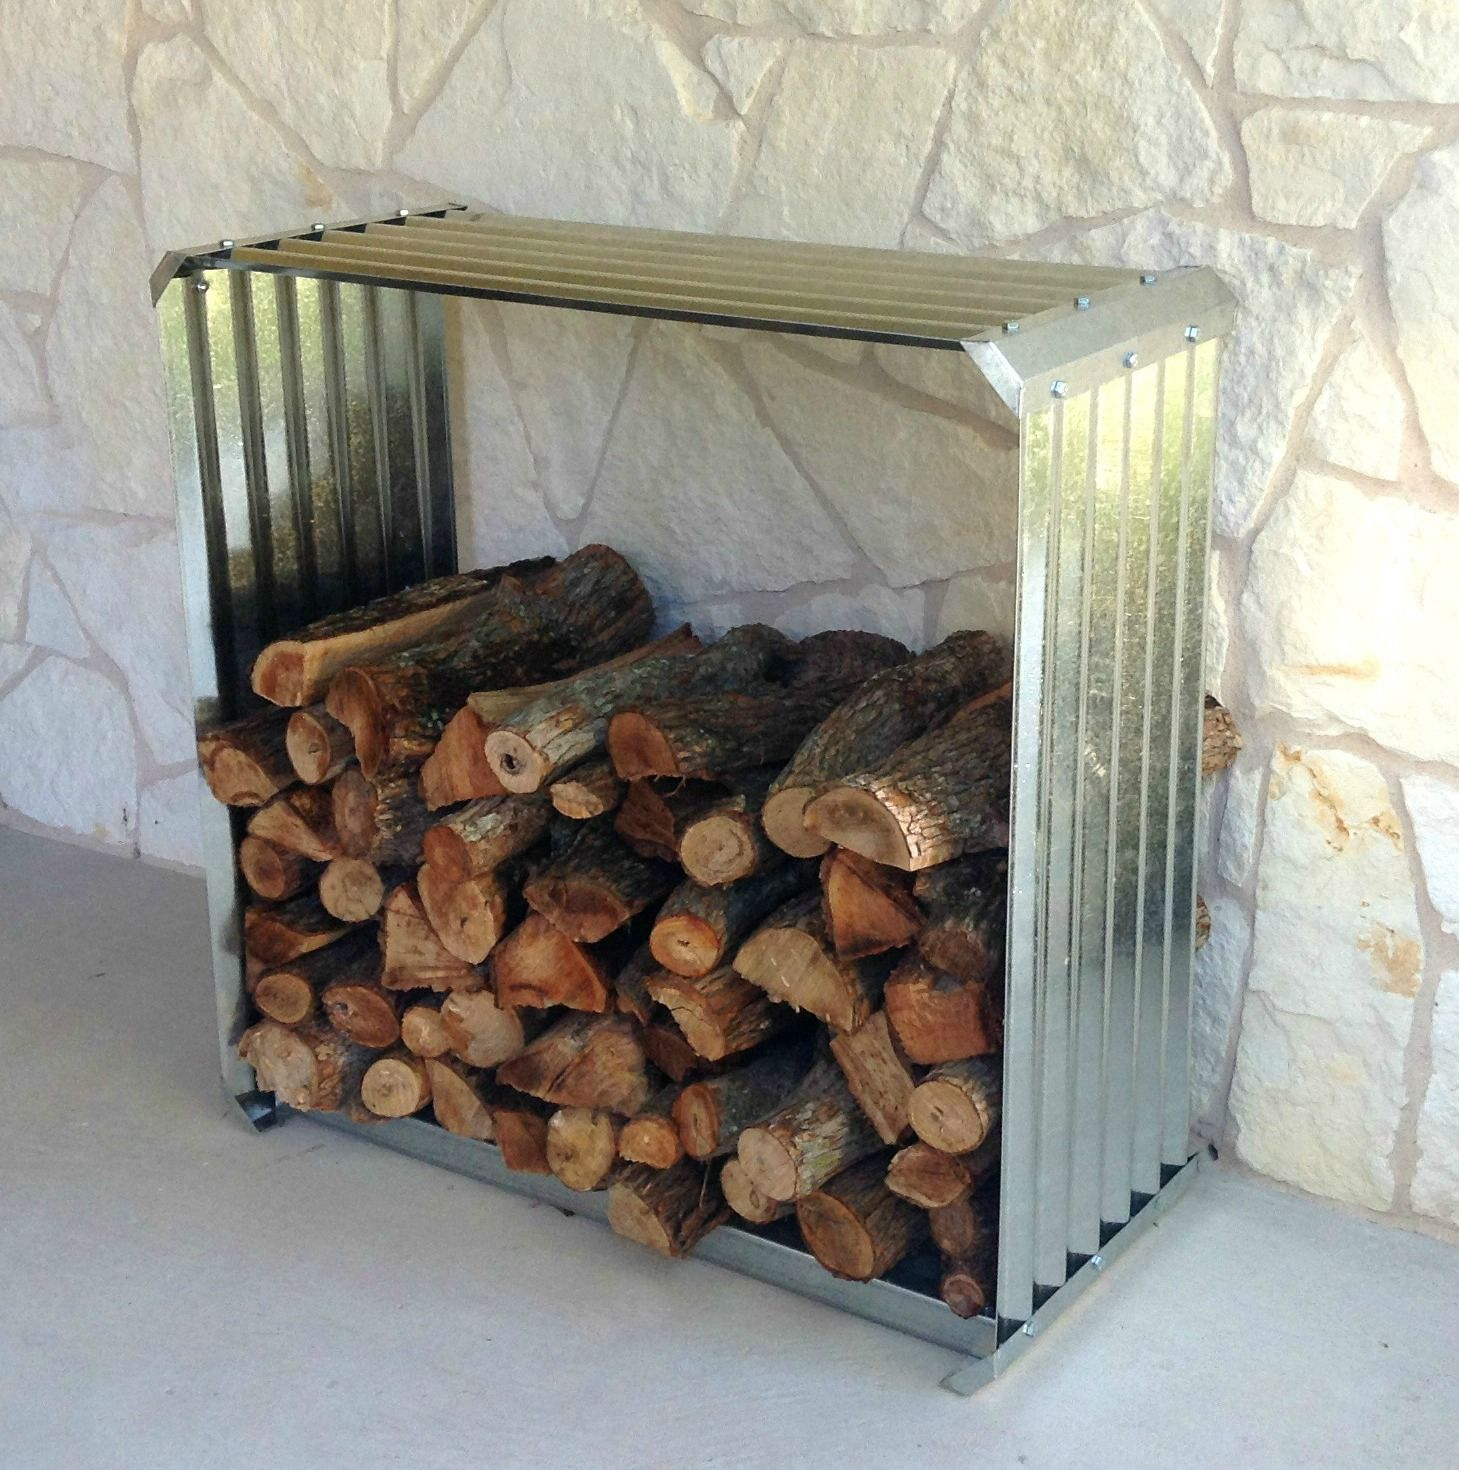 Fireplace Log Holder Fresh Corrugated Firewood Rack A Unique Way to Store Firewood